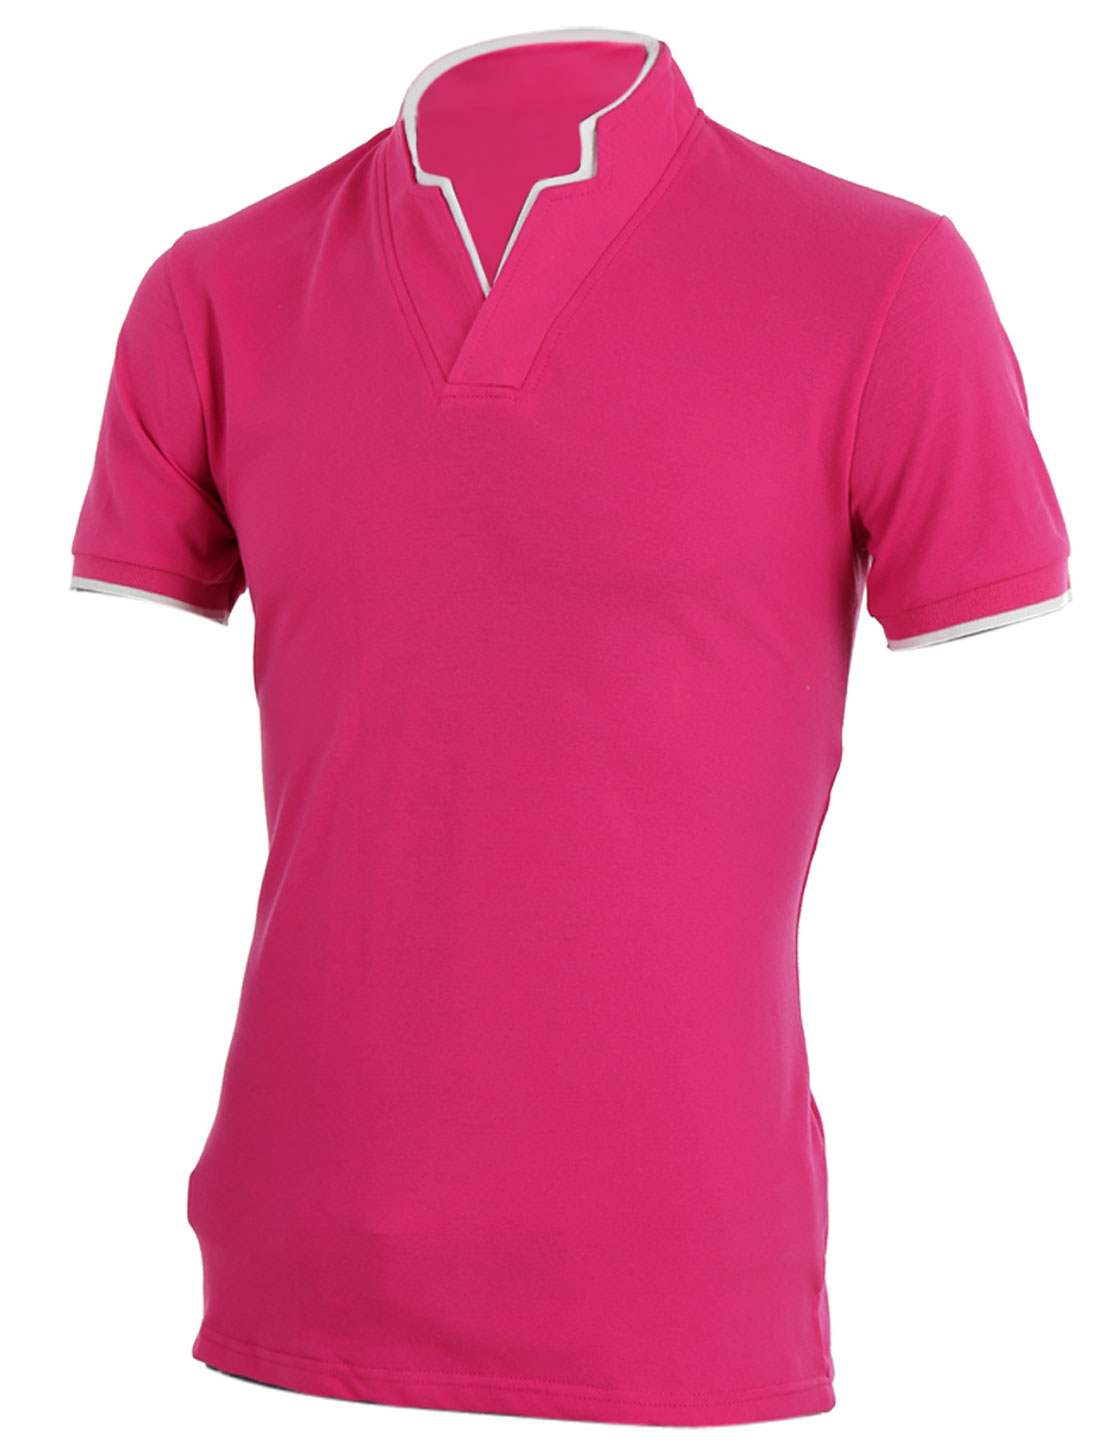 Men Stylish Patchwork Stretchy Short-sleeved Tops Shirt Fuchsia M